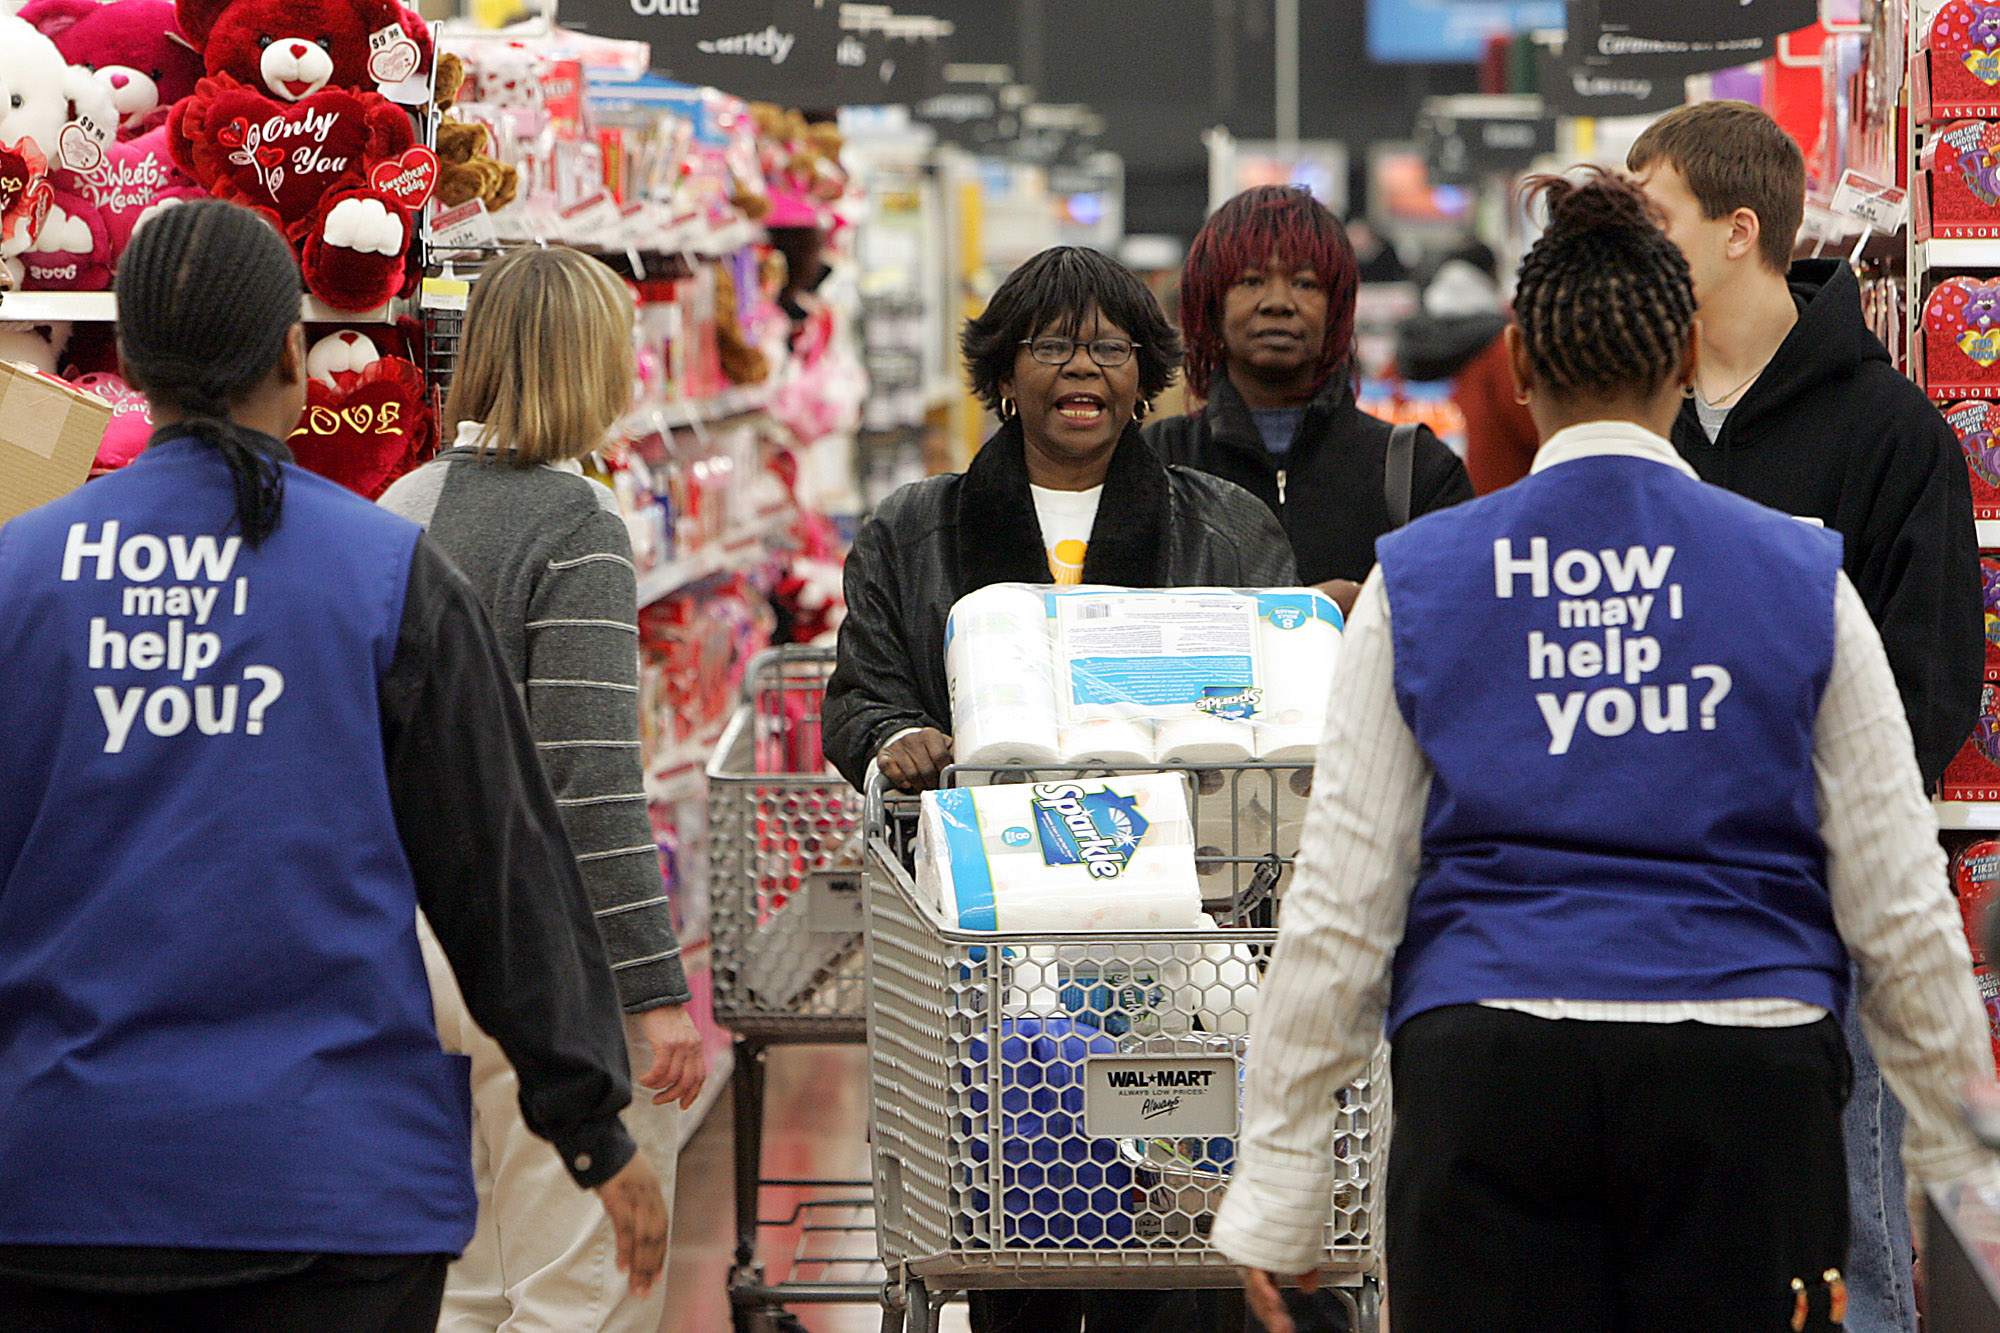 Phyllis McCrary, center, talks to store greeters while shopp